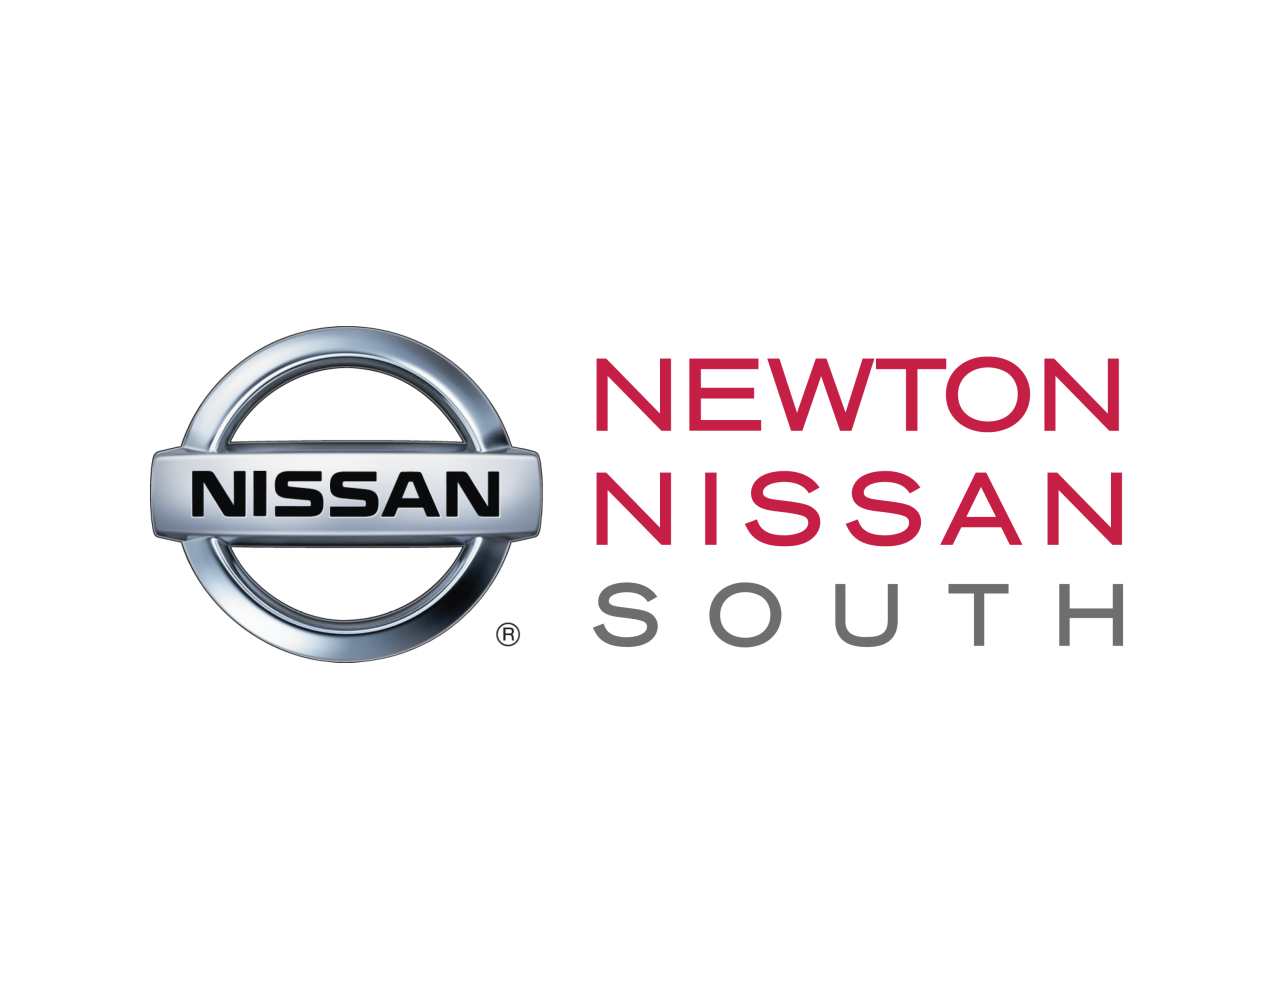 Newton Nissan South >> Newton Nissan South Employees